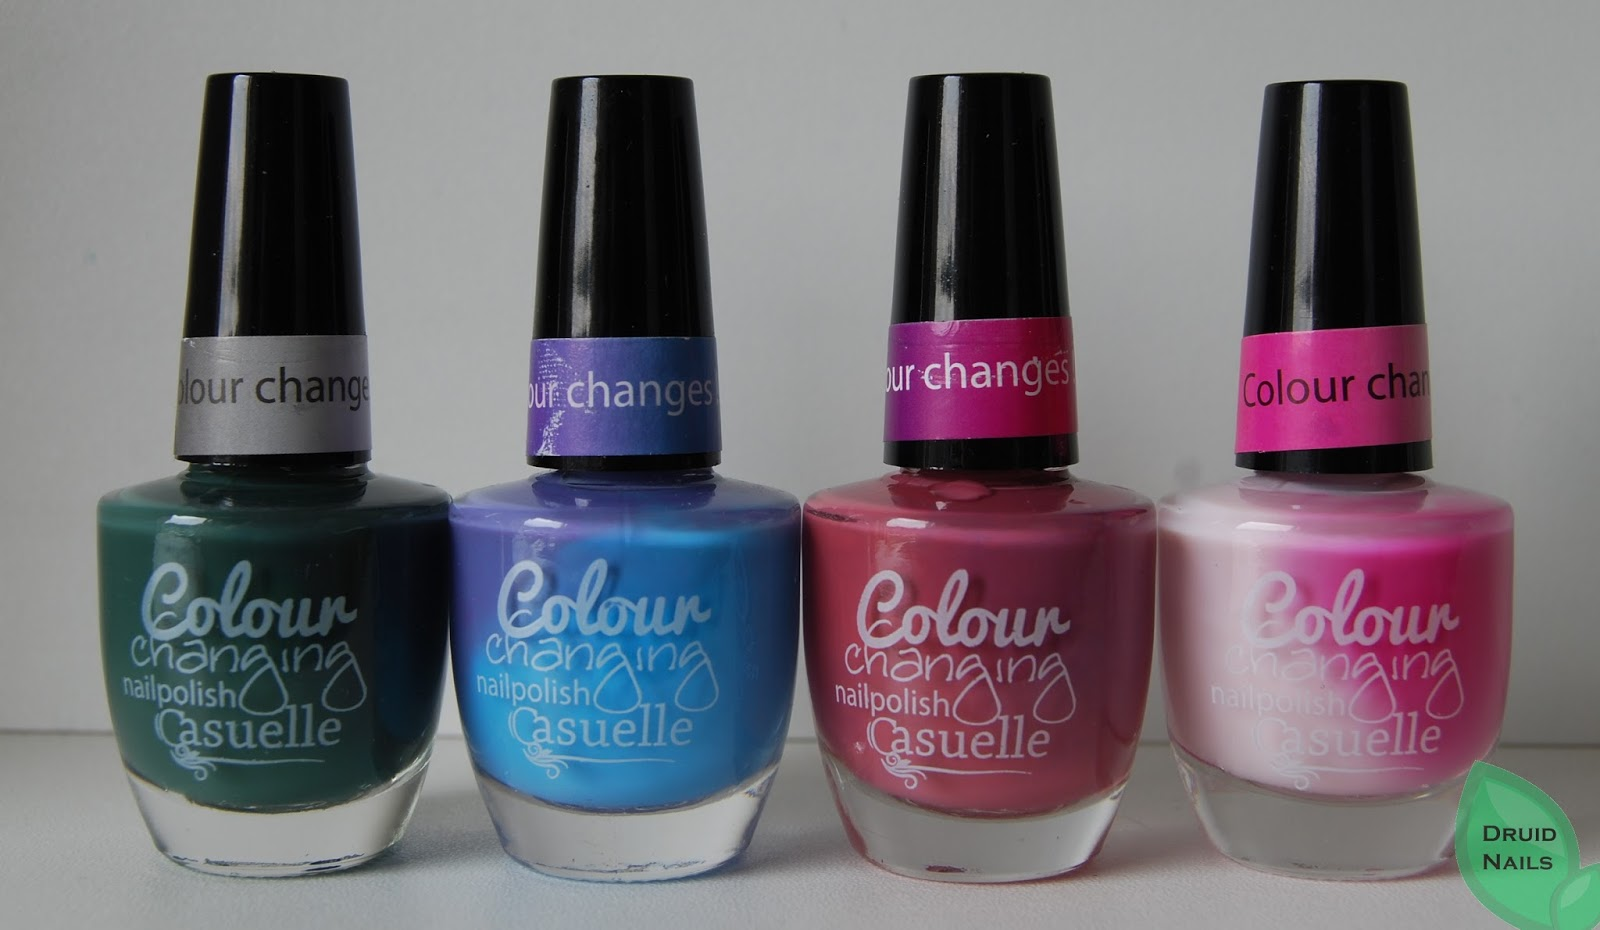 Casuelle Colour Changing Polishes